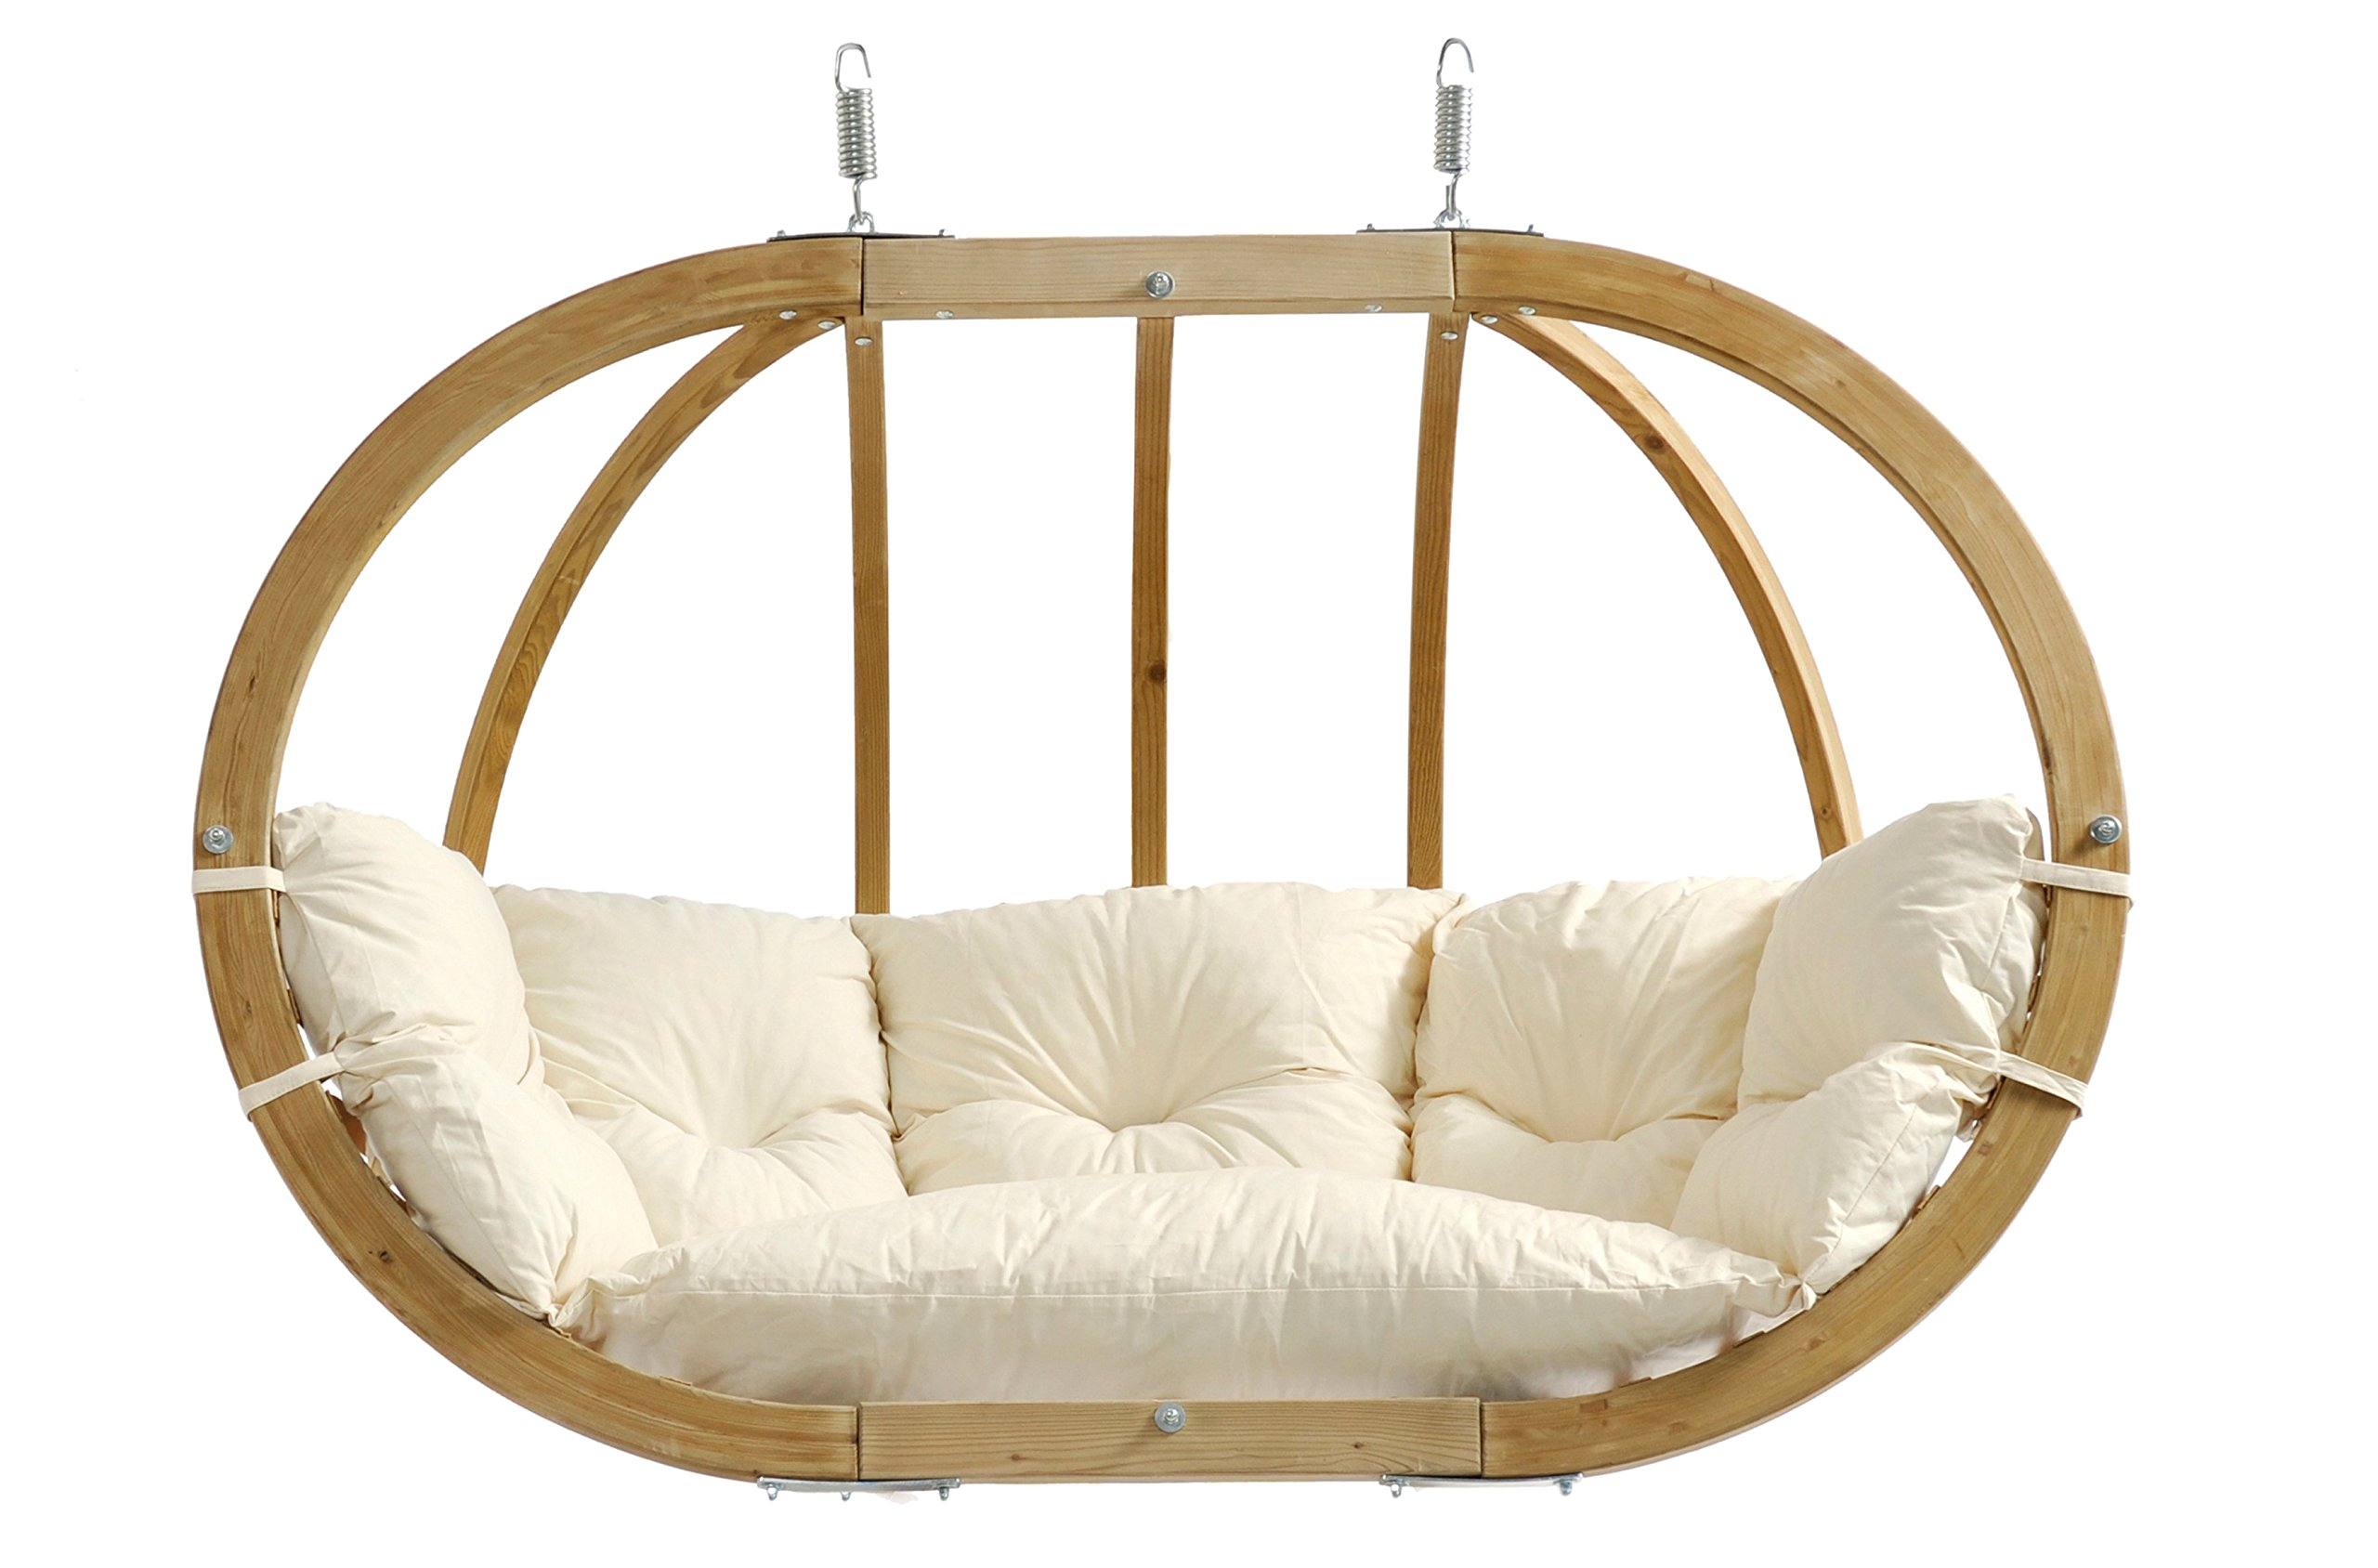 Globo Royal Double Chair, Treated Wood Construction, Indoors and Outdoors, Natural Spruce Wood, Agora Outdoor Fabric Cushion, Two Person, Natural Agora, 70''W x 48''h x 30''D, Holds Up To 440lbs